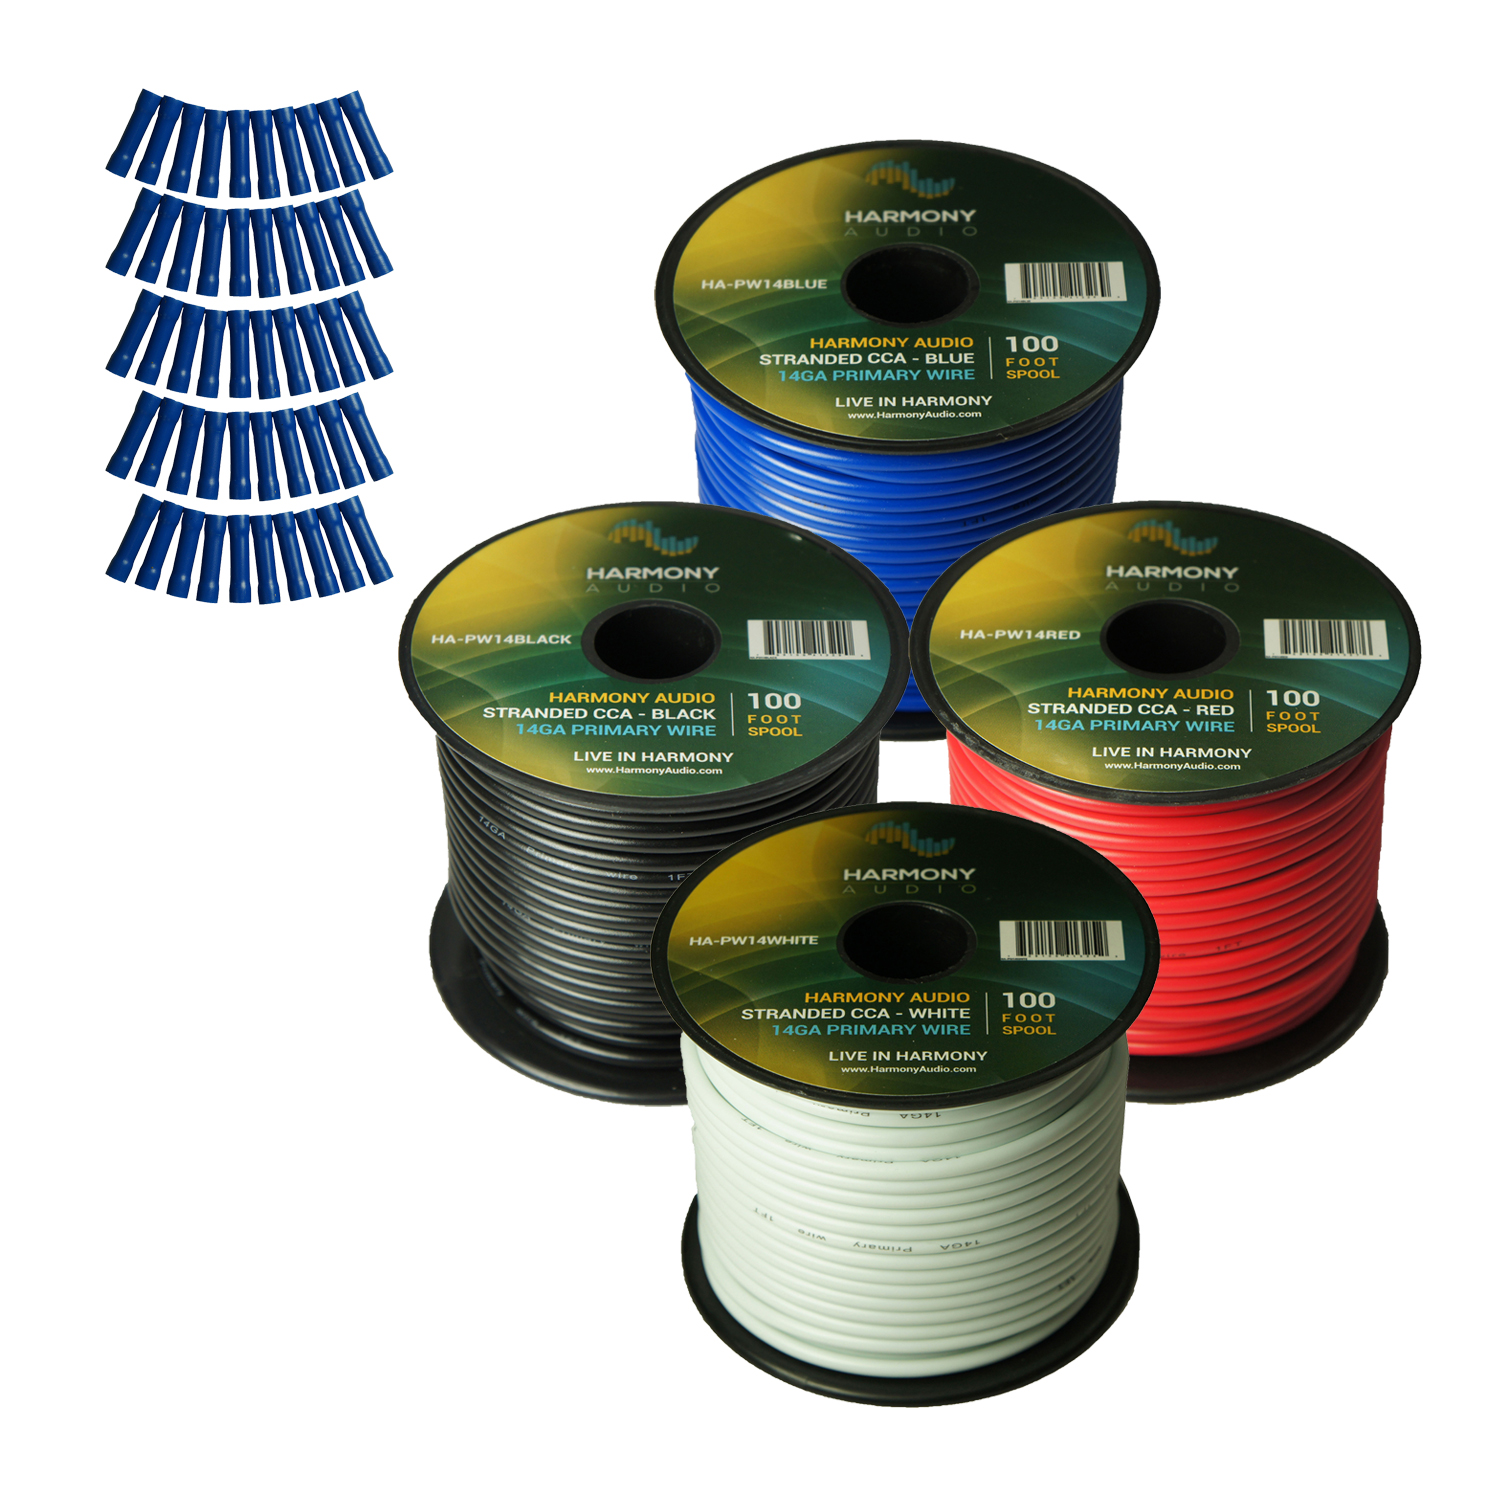 Harmony Audio Primary Single Conductor 14 Gauge Power or Ground Wire - 4 Rolls - 400 Feet - 4 Color Mix for Car Audio / Trailer / Model Train / Remote